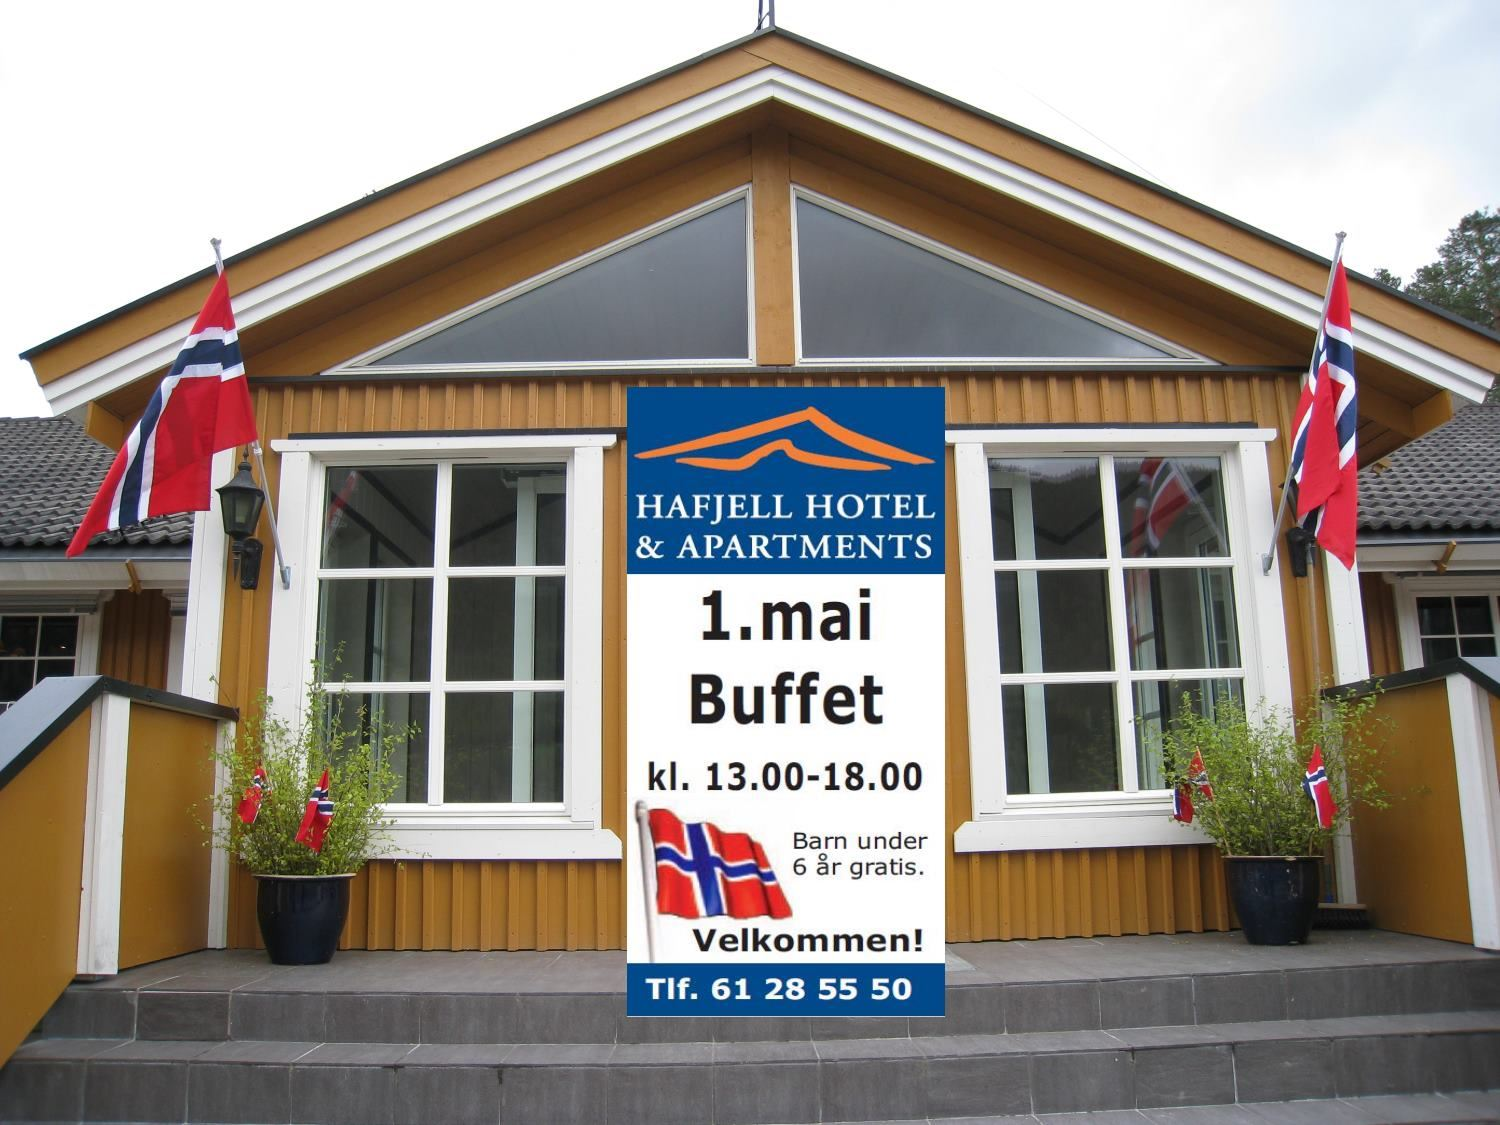 1 May bufet at Hafjell Hotel